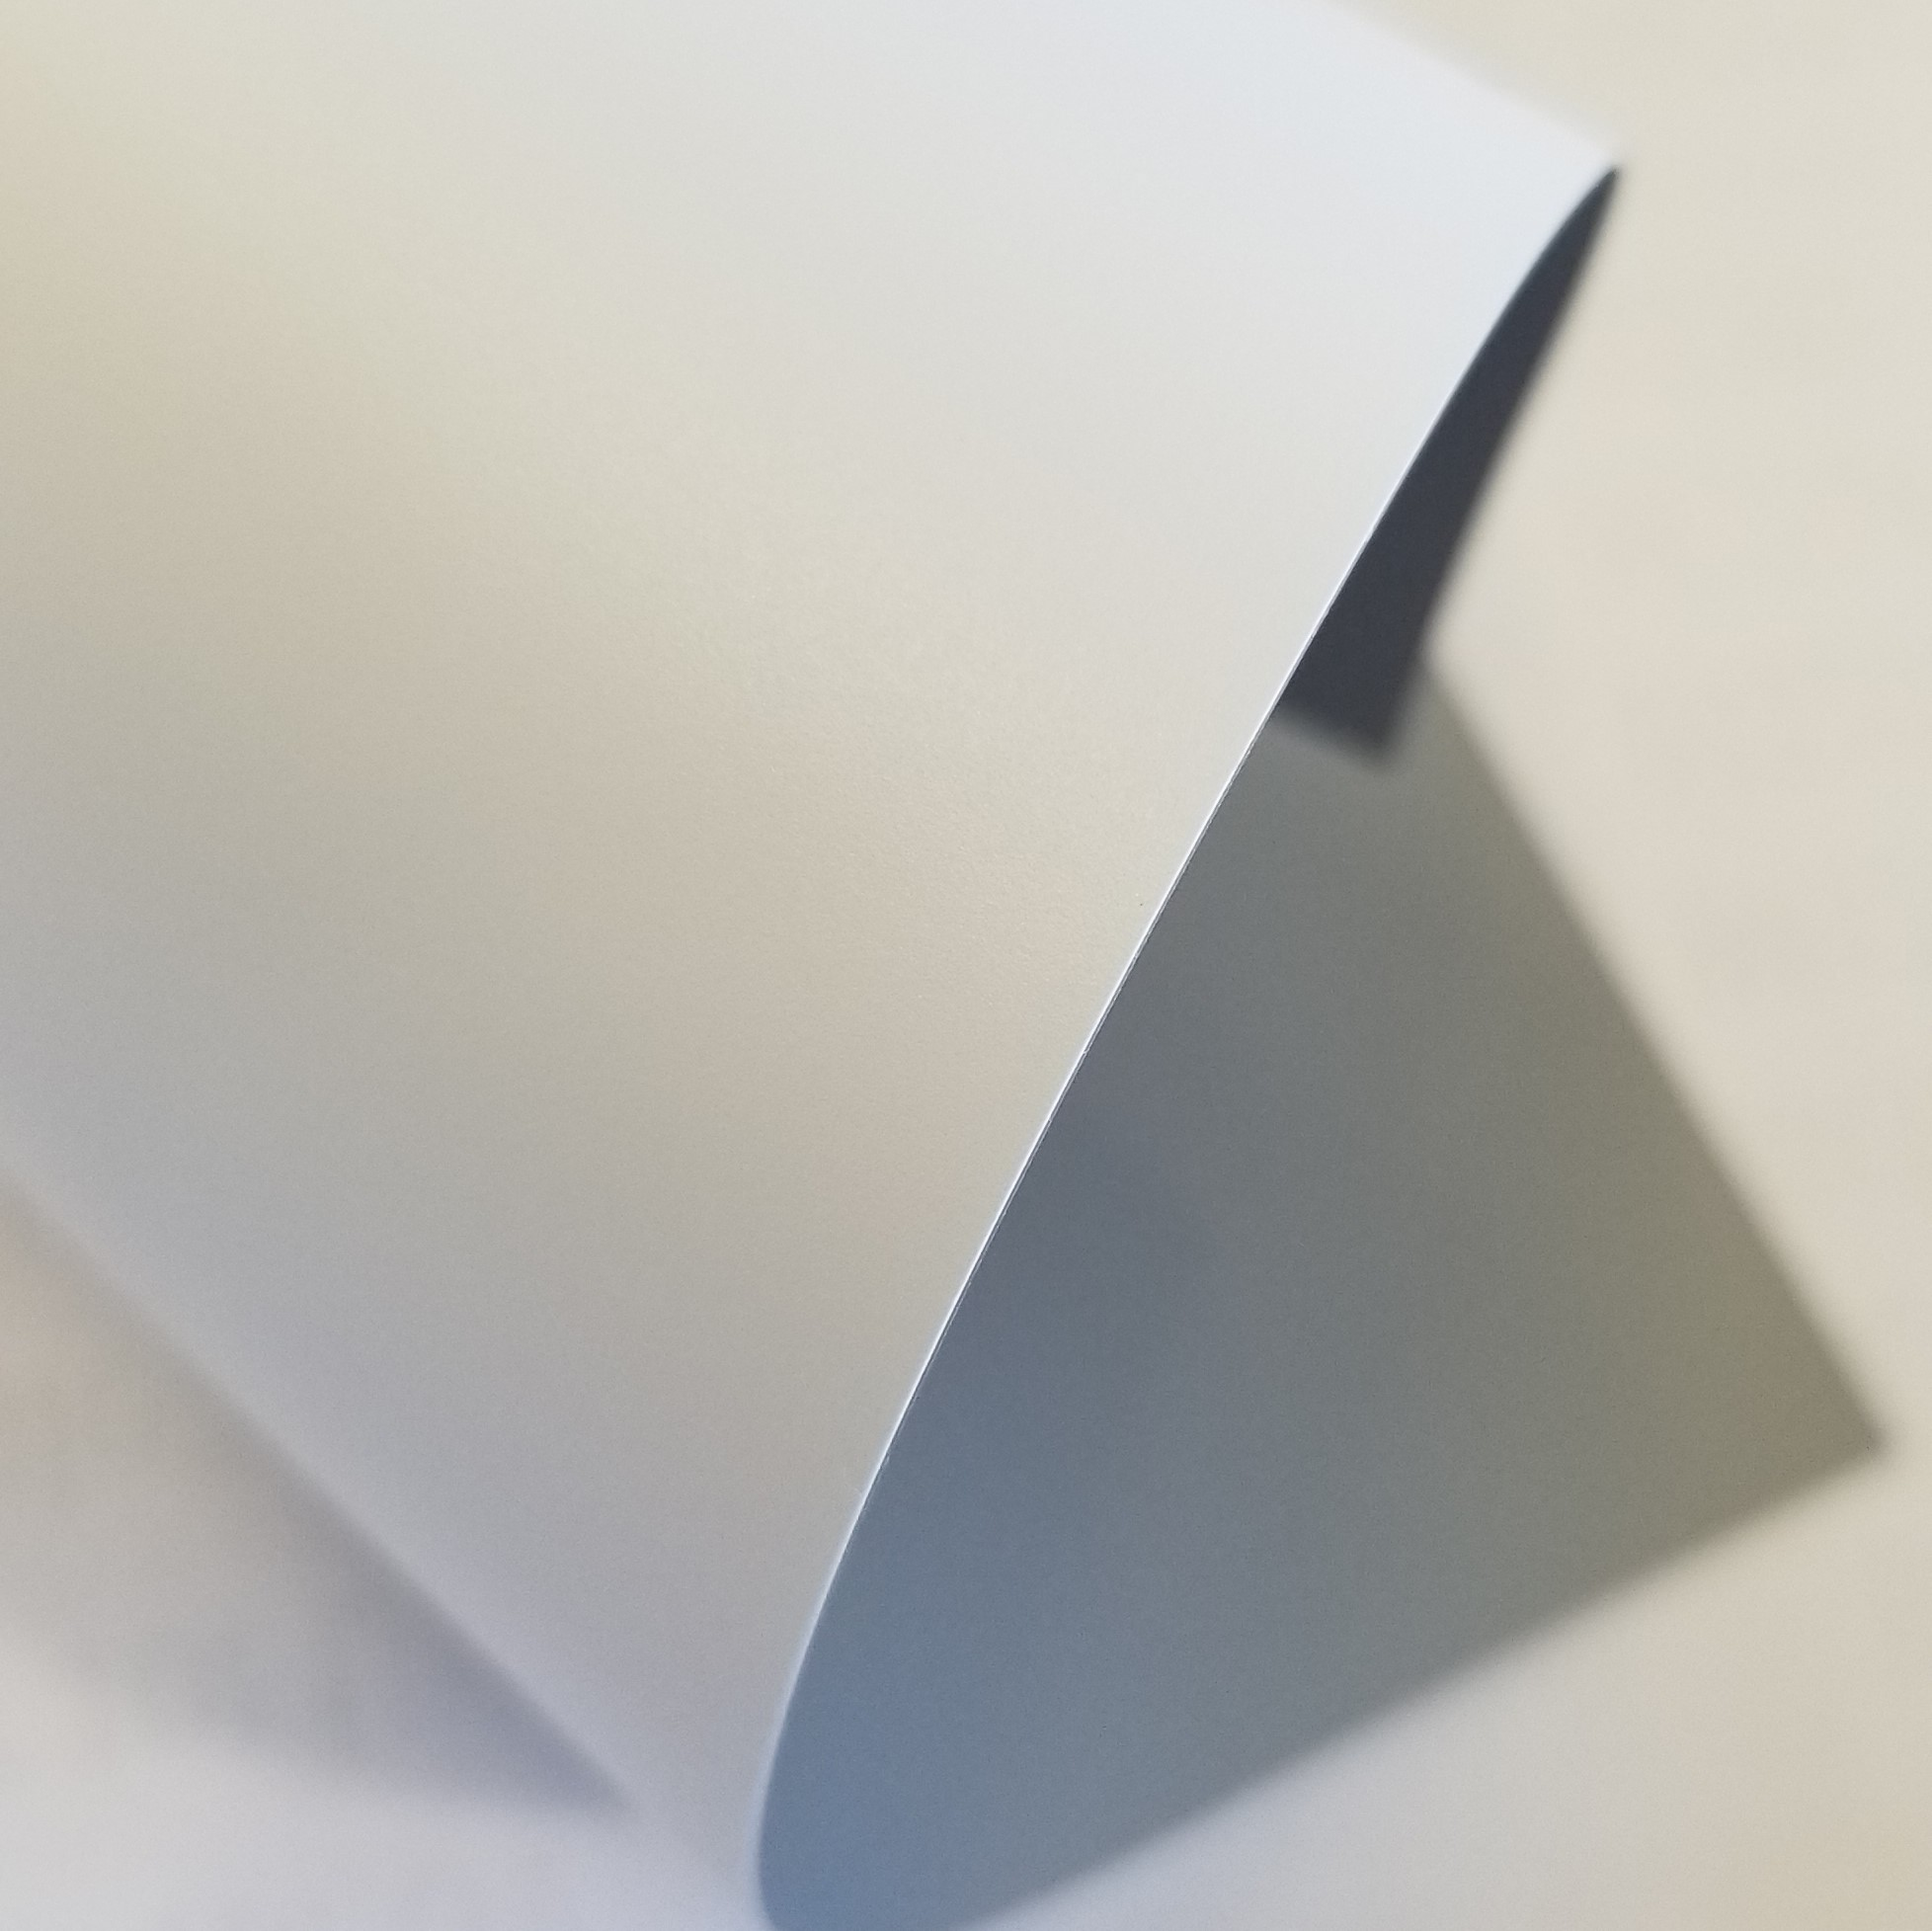 Rigid Vinyl and PVC Film